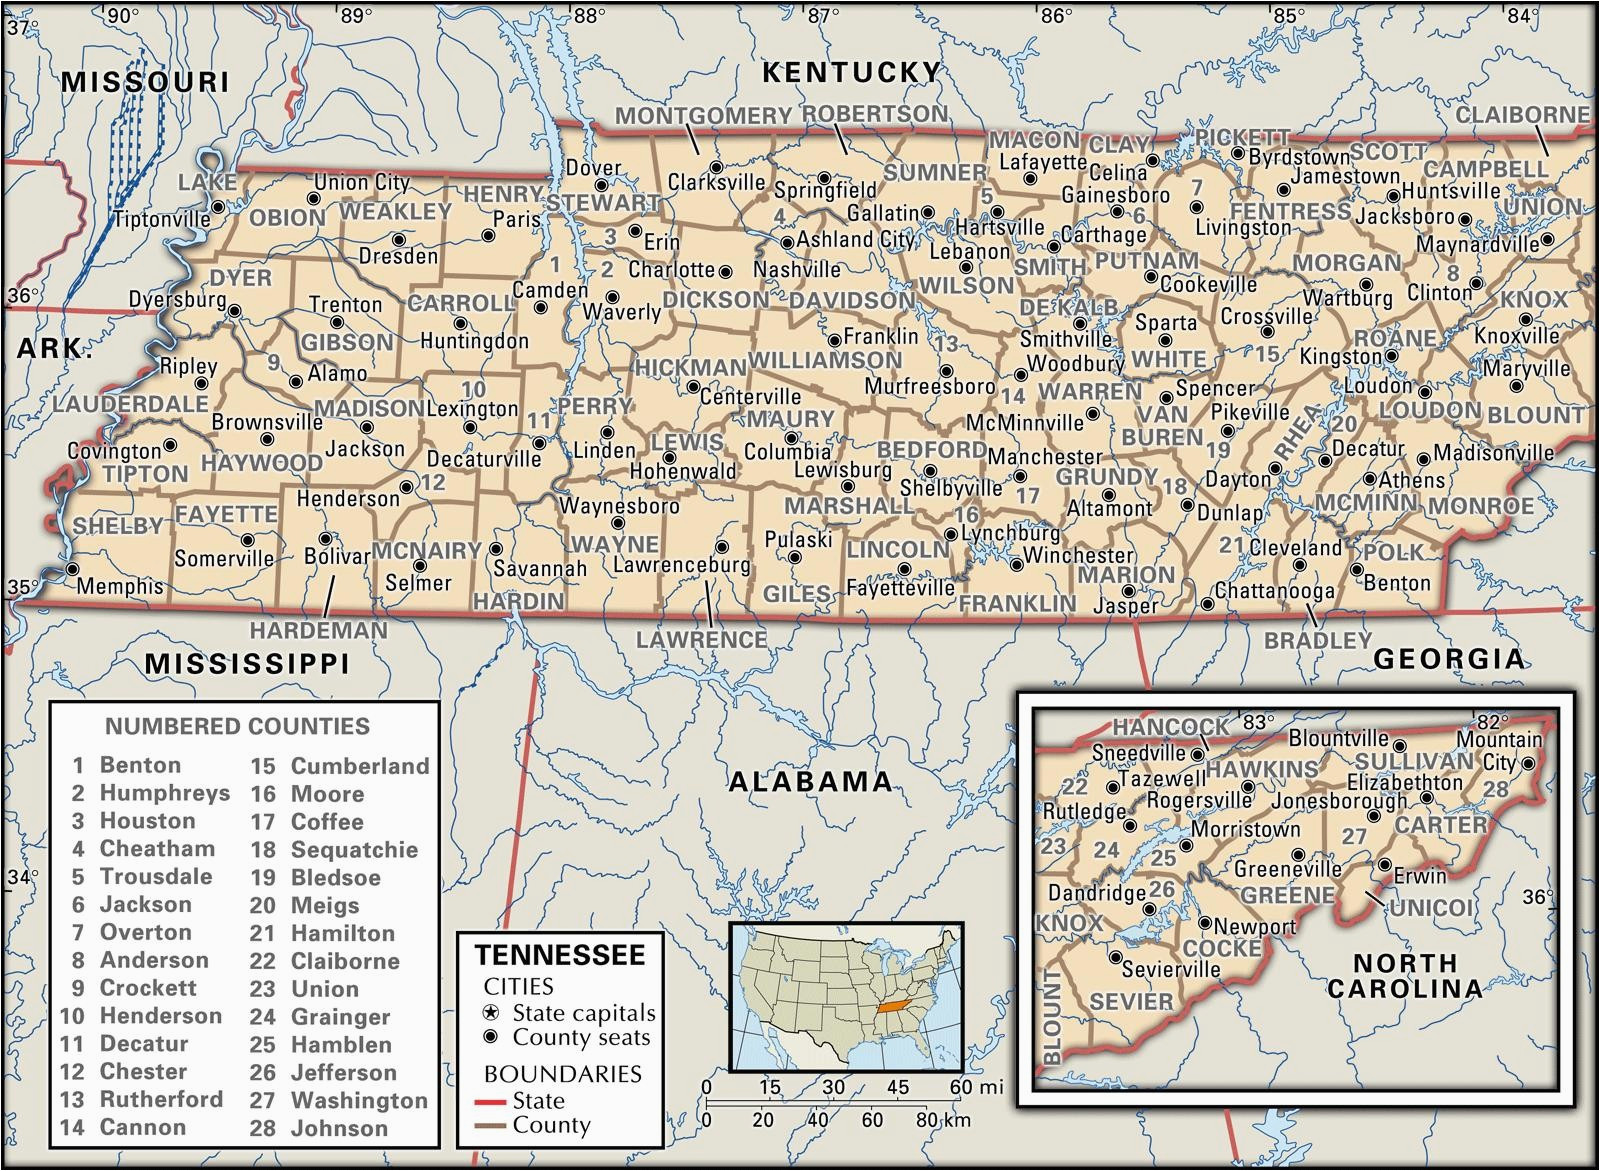 image relating to Printable Map of Tennessee Counties identified as Printable Map Of Tennessee Counties A Map Of Tennessee